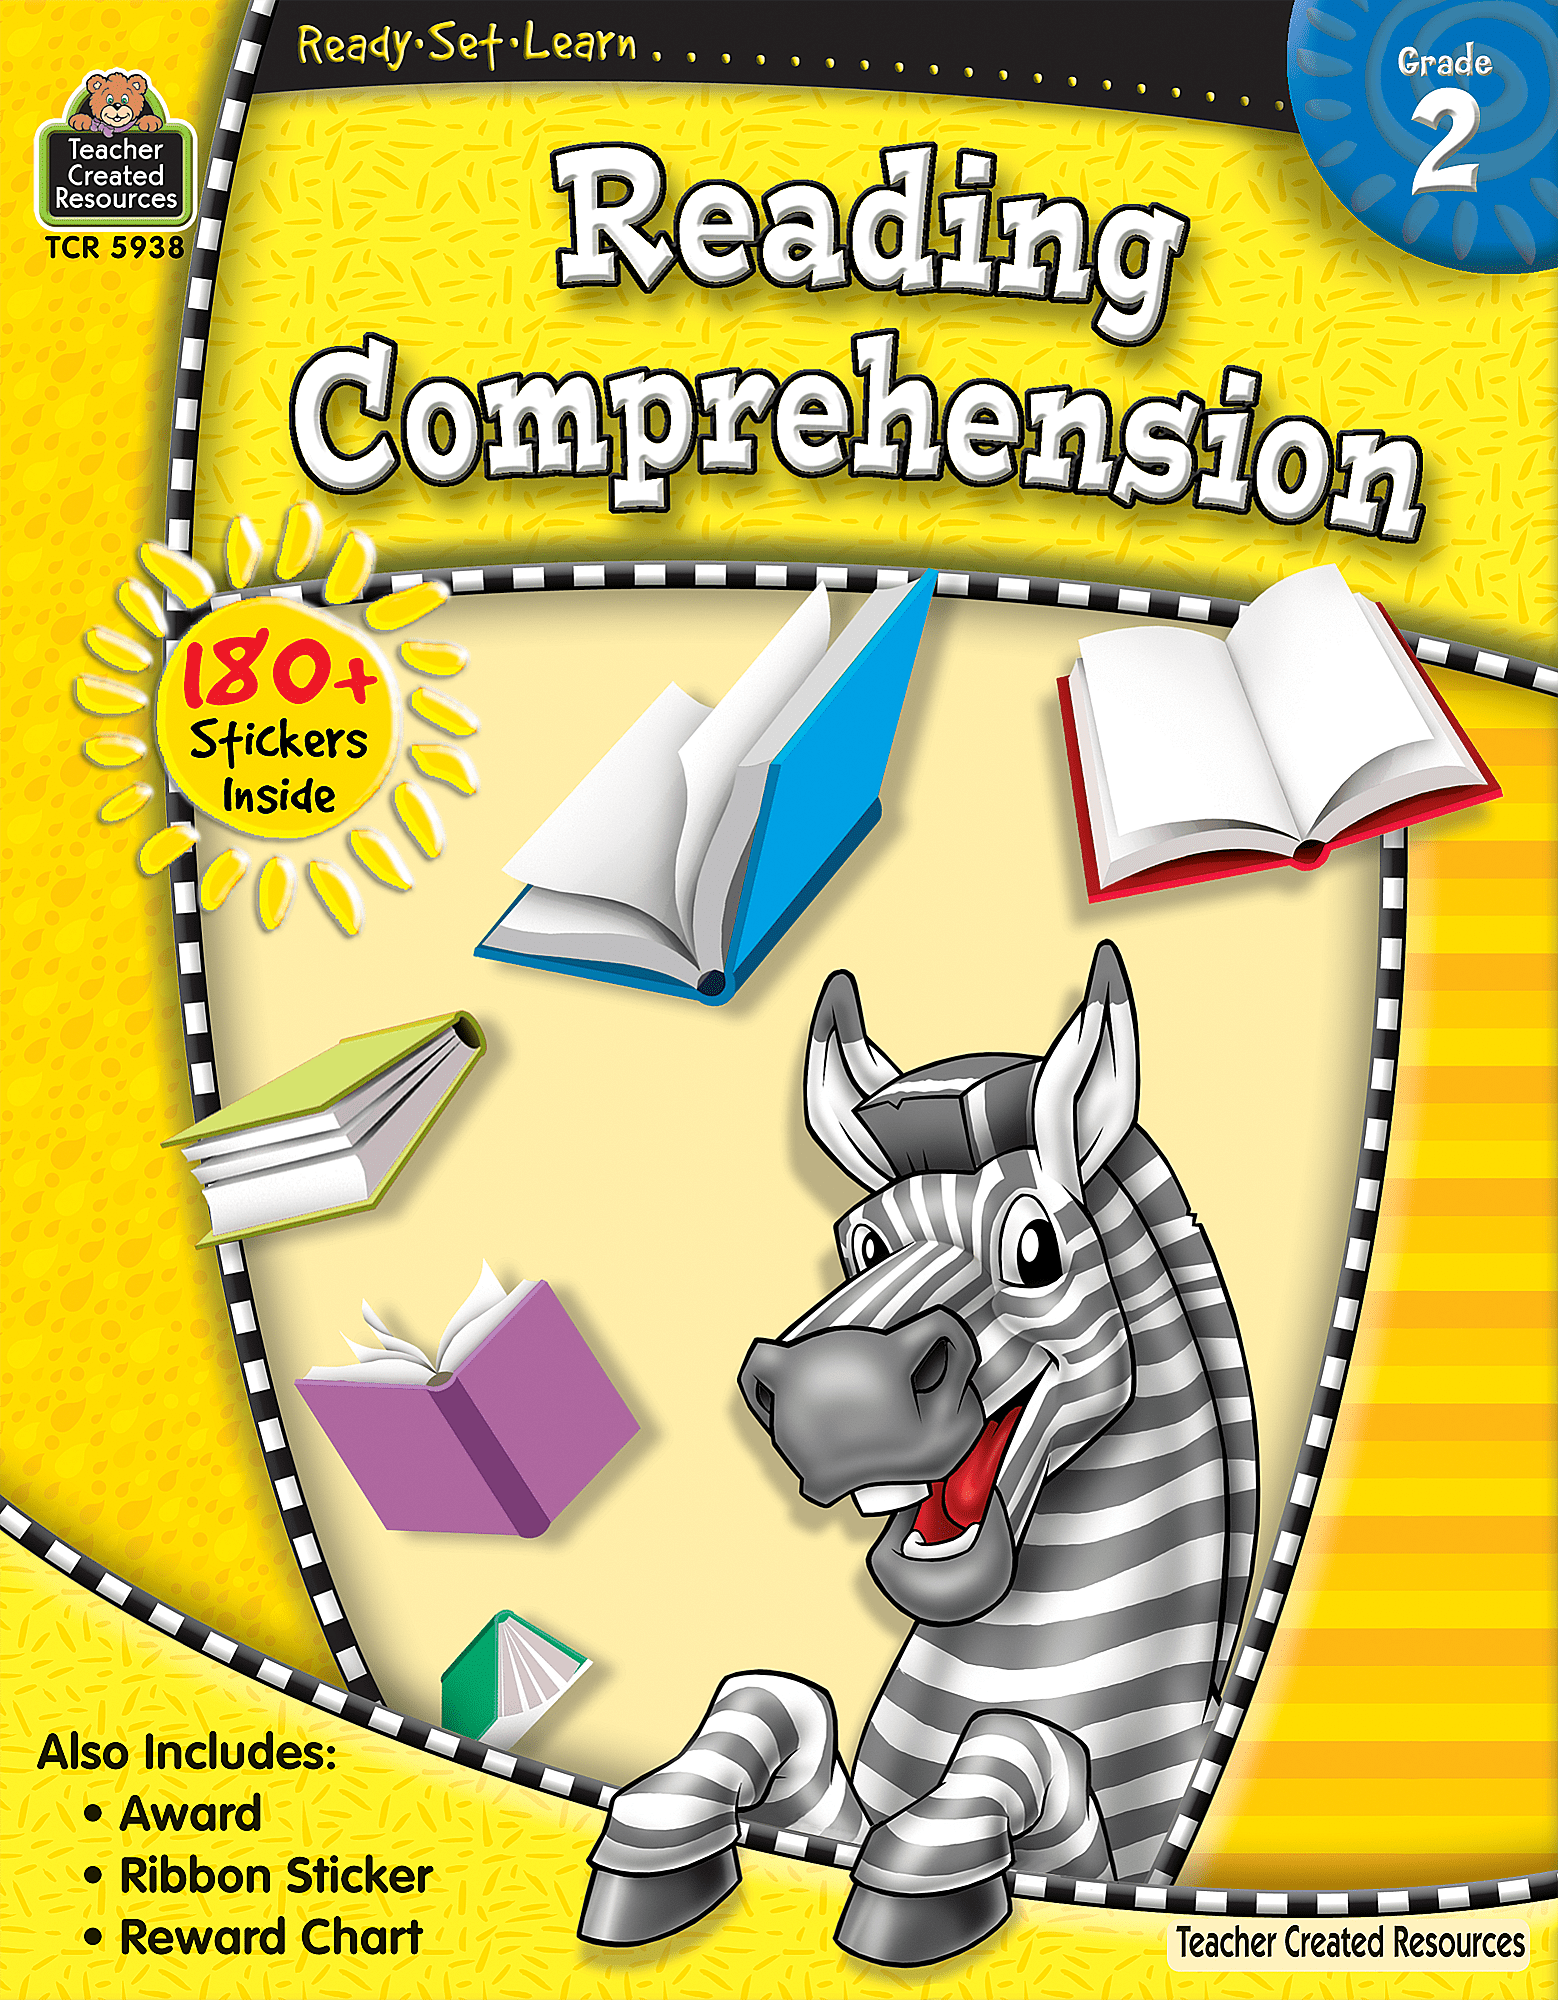 Ready Set Learn Reading Comprehension Grade 2